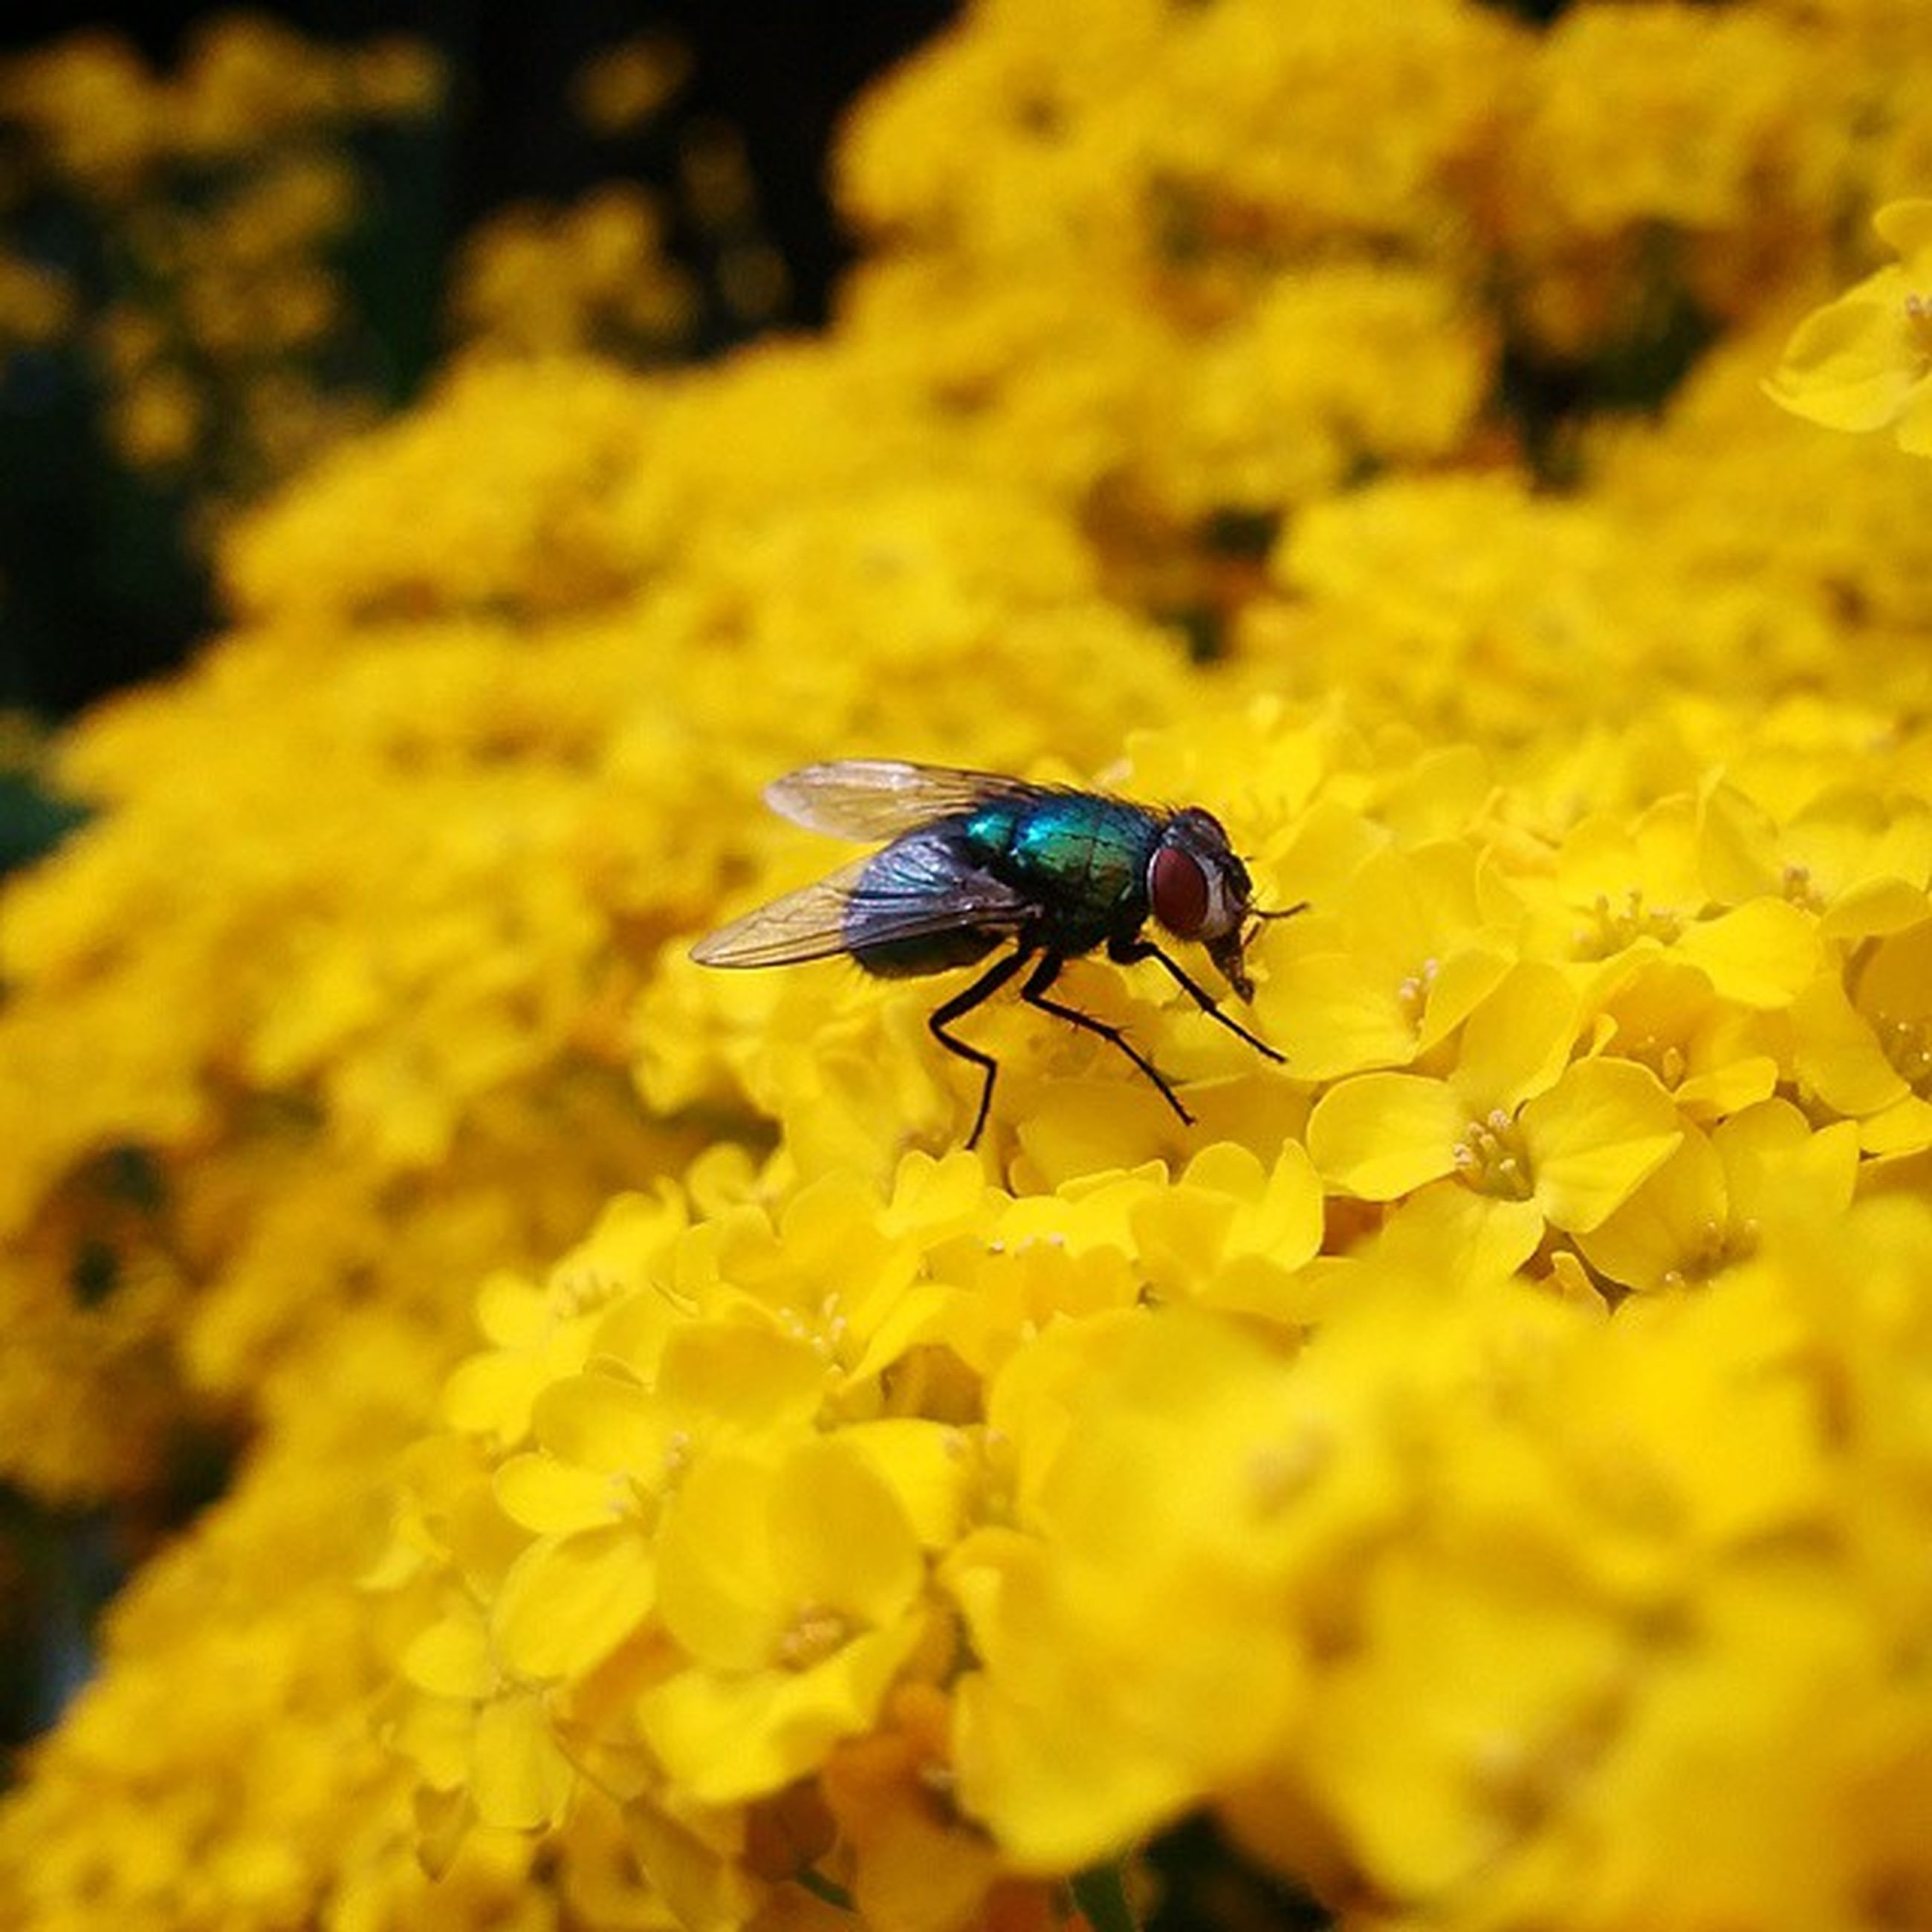 insect, one animal, yellow, animal themes, flower, animals in the wild, wildlife, bee, petal, pollination, fragility, freshness, beauty in nature, nature, close-up, focus on foreground, selective focus, growth, honey bee, symbiotic relationship